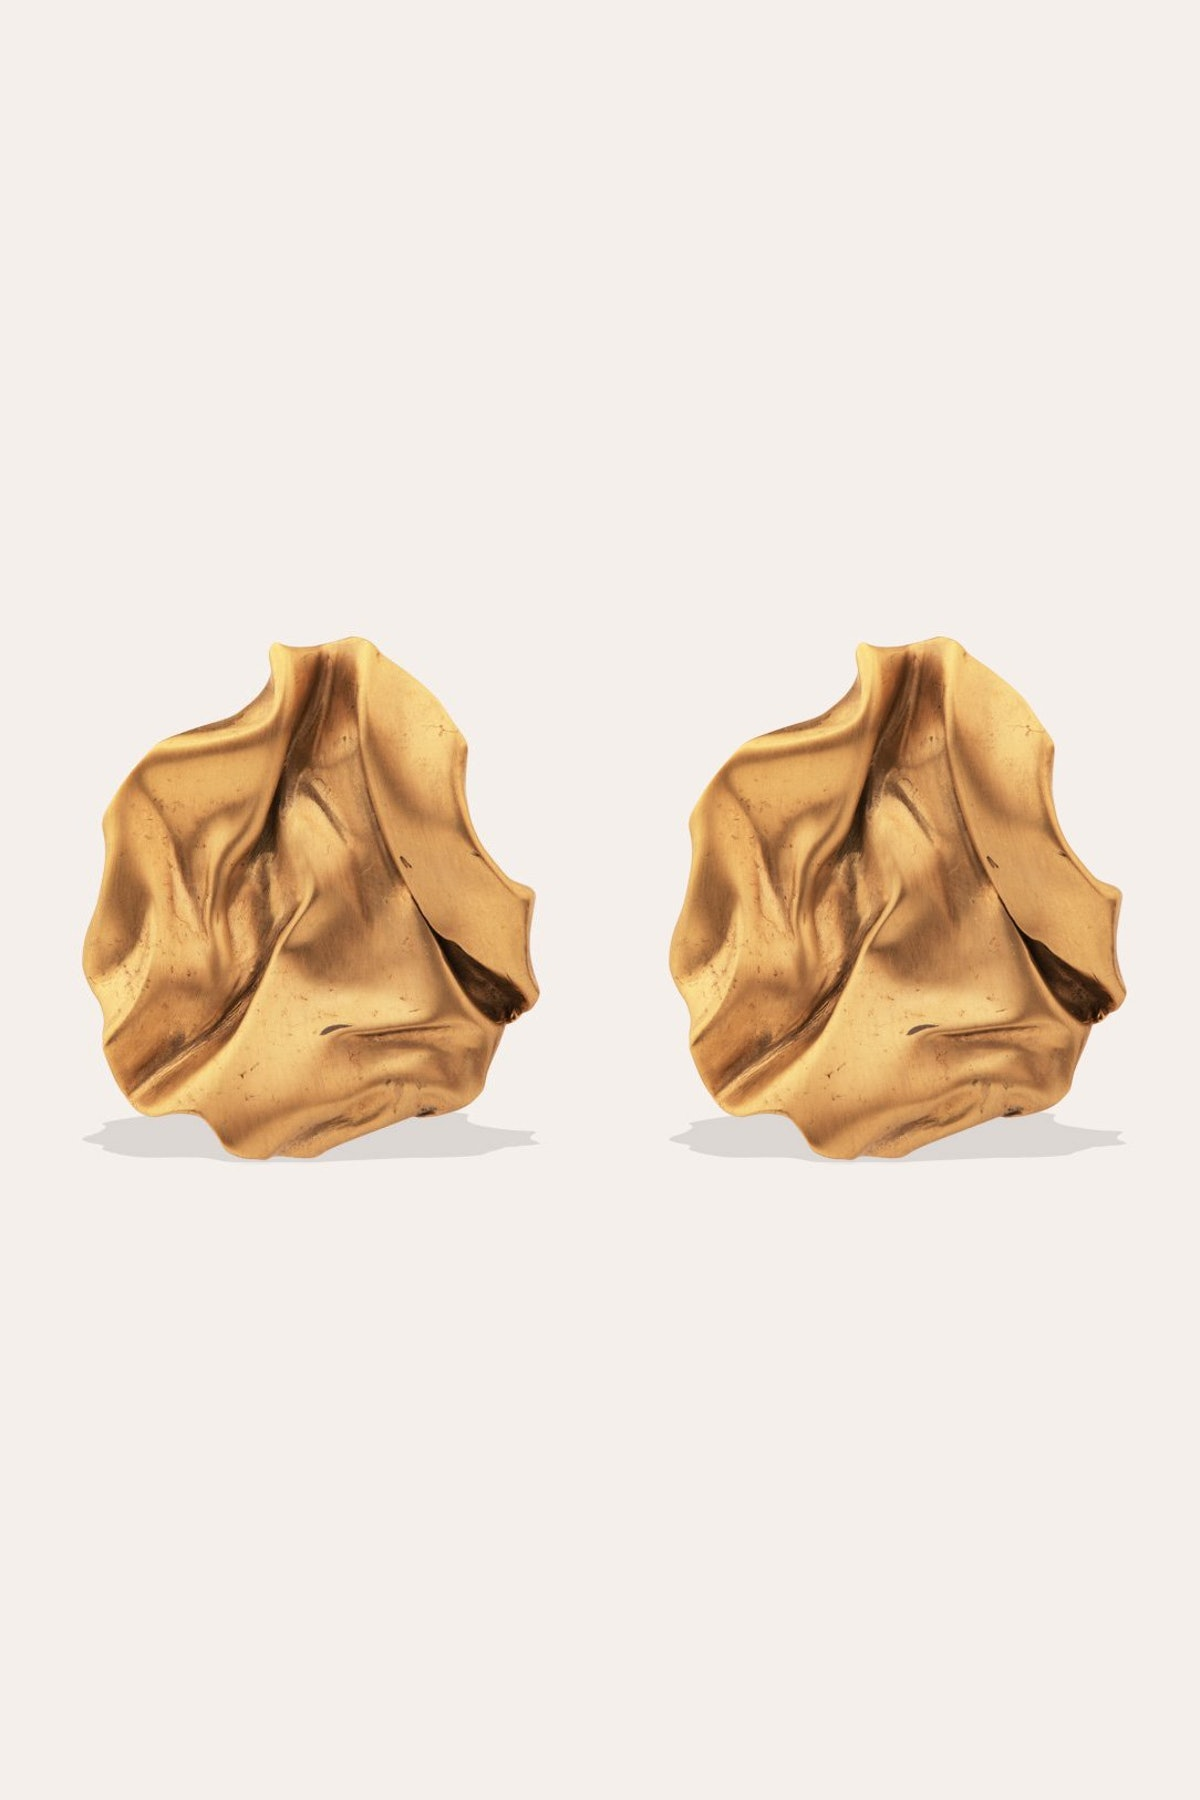 Gold vermeil Groundswell earrings from Completedworks.